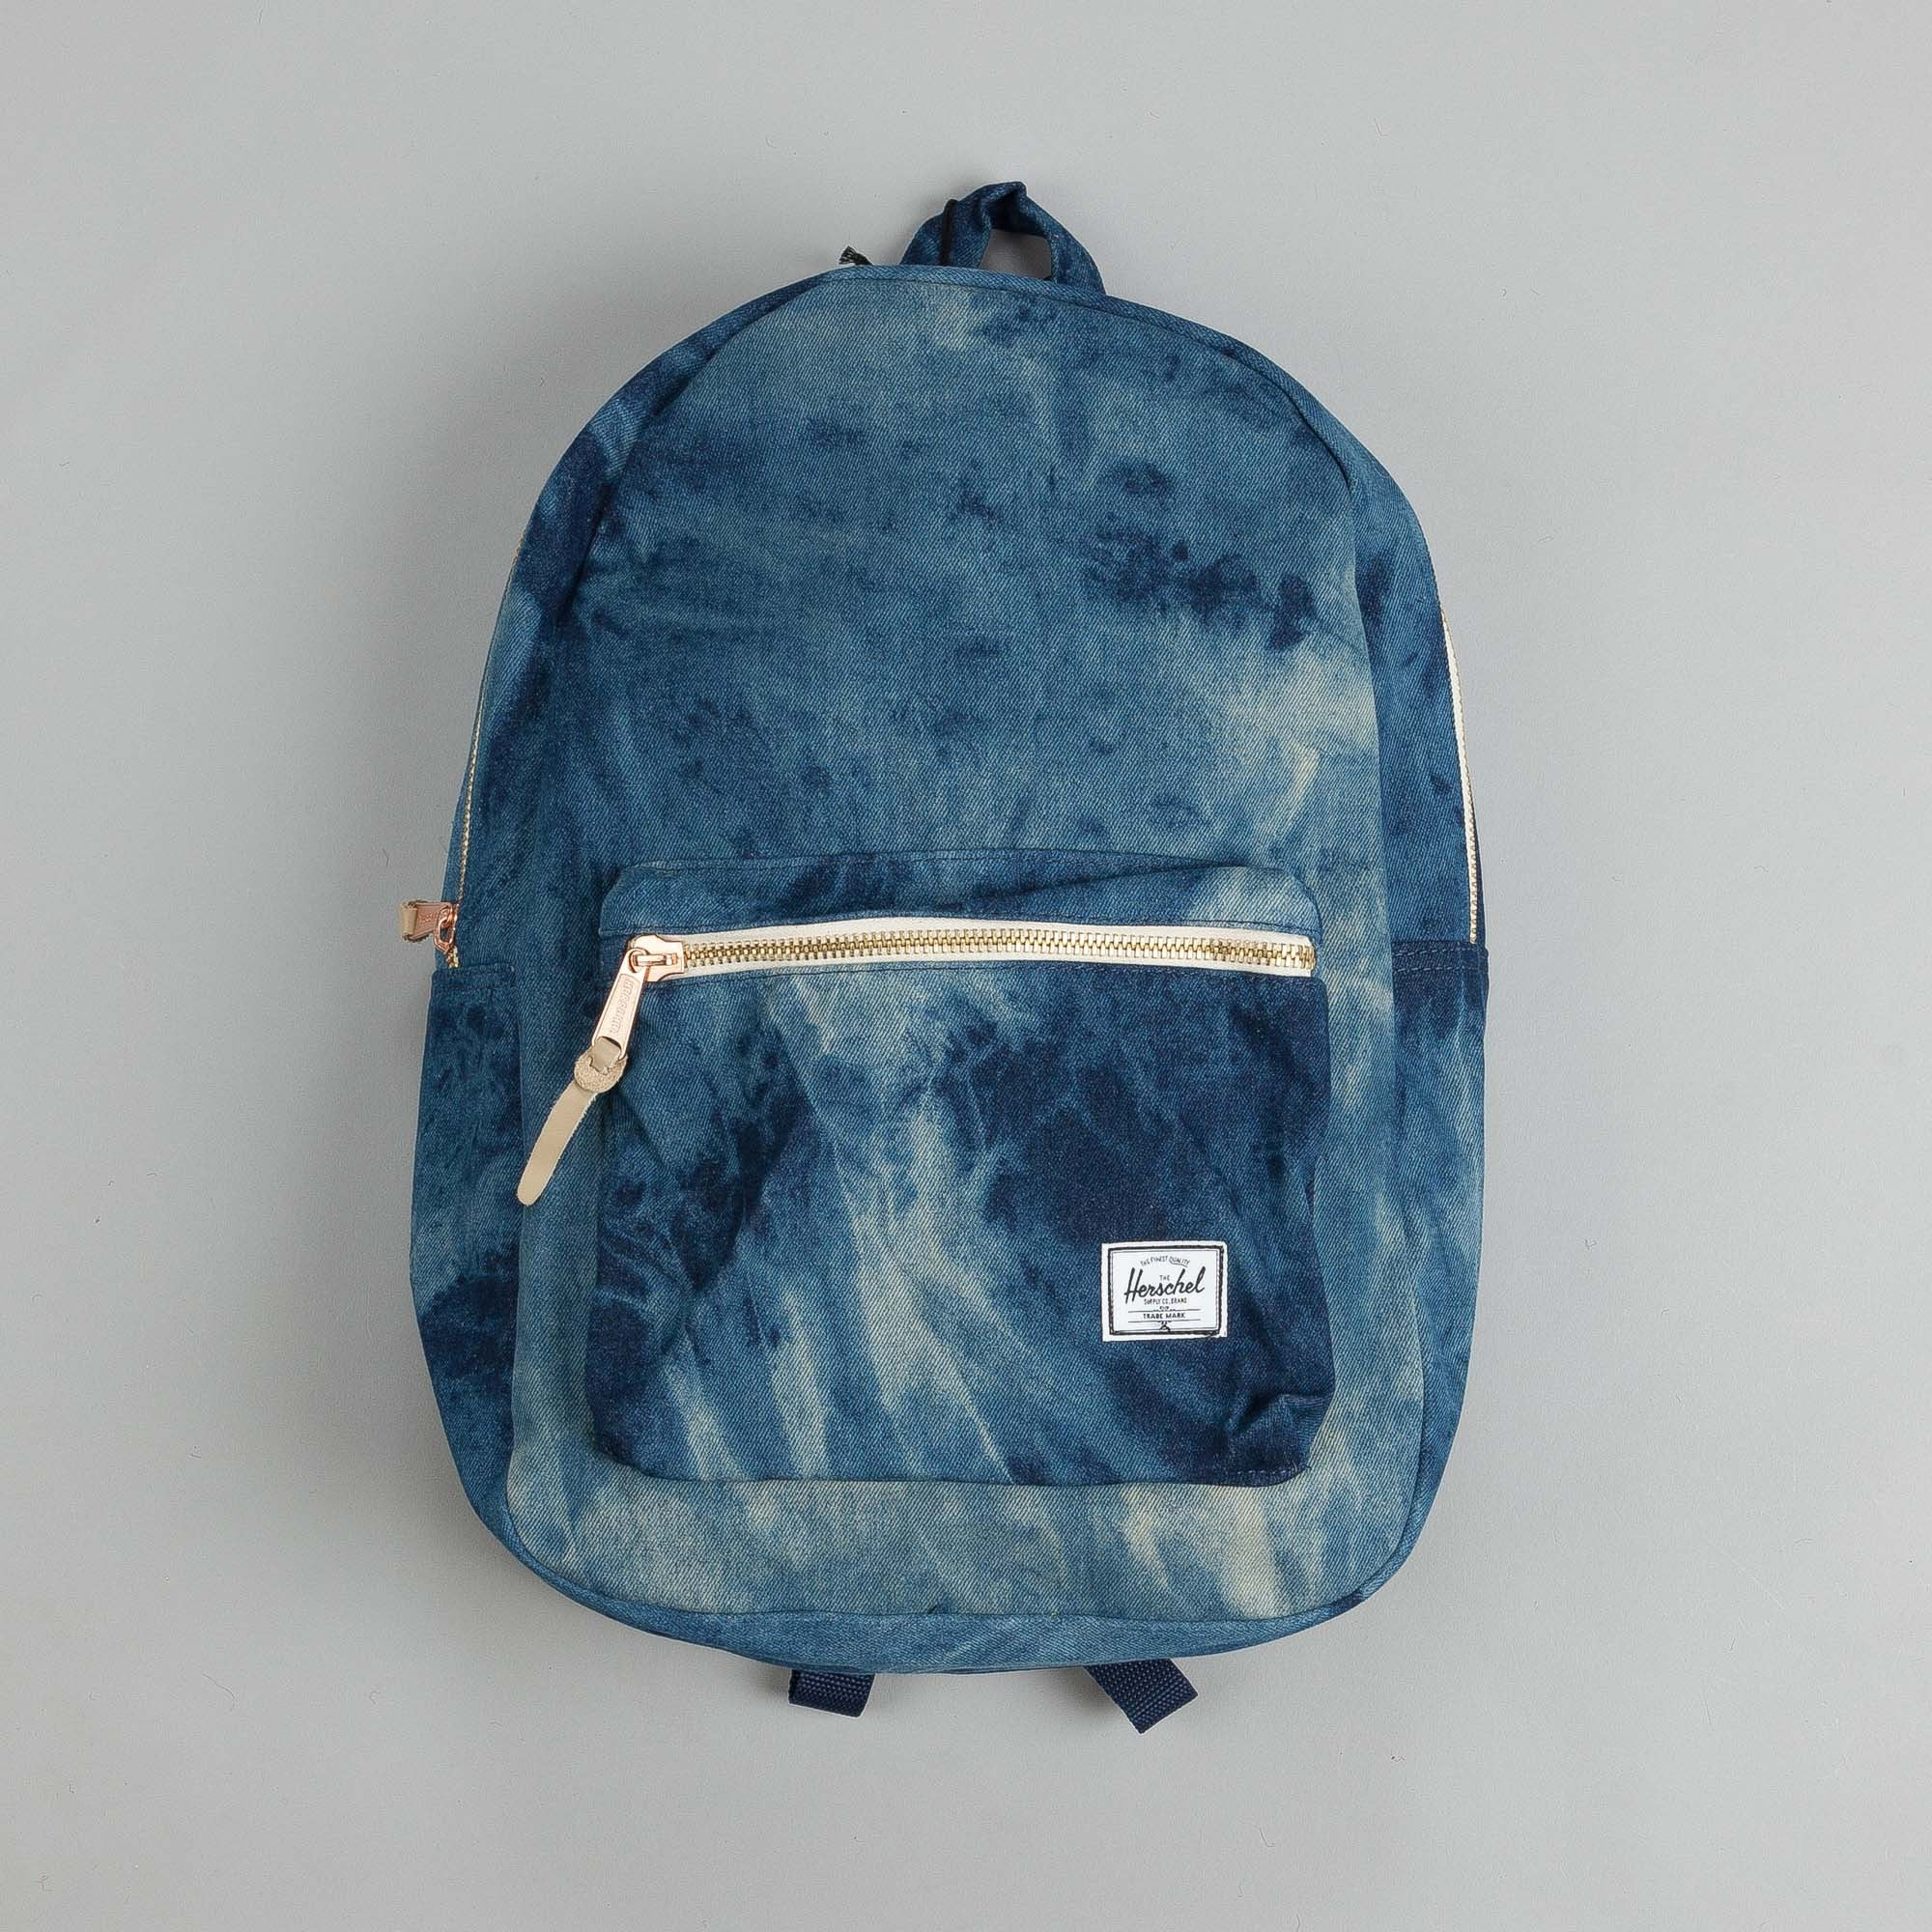 Herschel Settlement Backpack Acid Wash Denim / Navy Coated Cotton Canvas